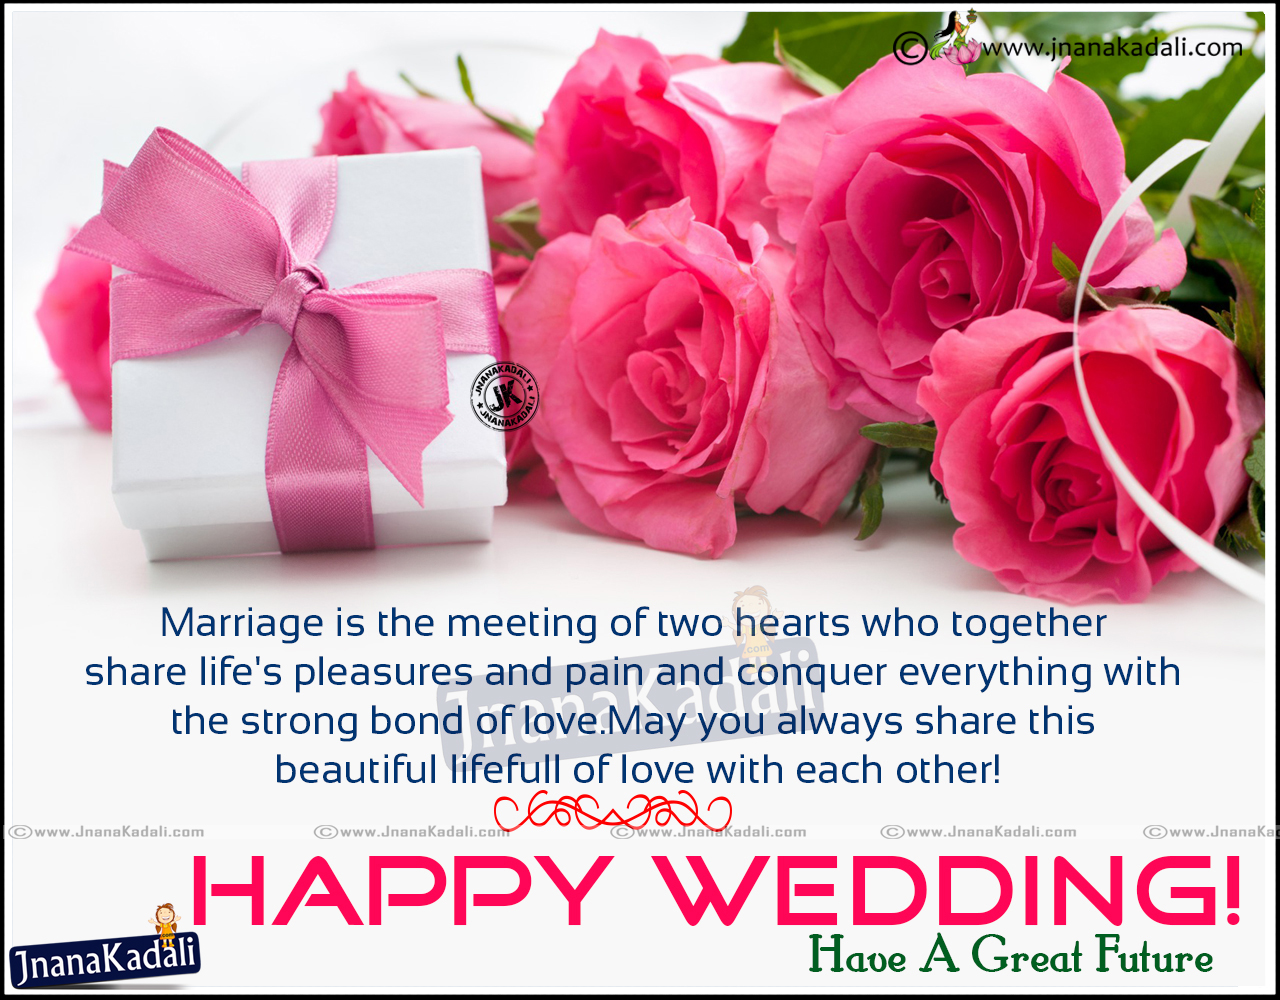 Happy married life messages and wishes in english jnana kadali here is a english language newly married couple wishes and quotes messages in english best happy married life thoughts and quotes pictures online m4hsunfo